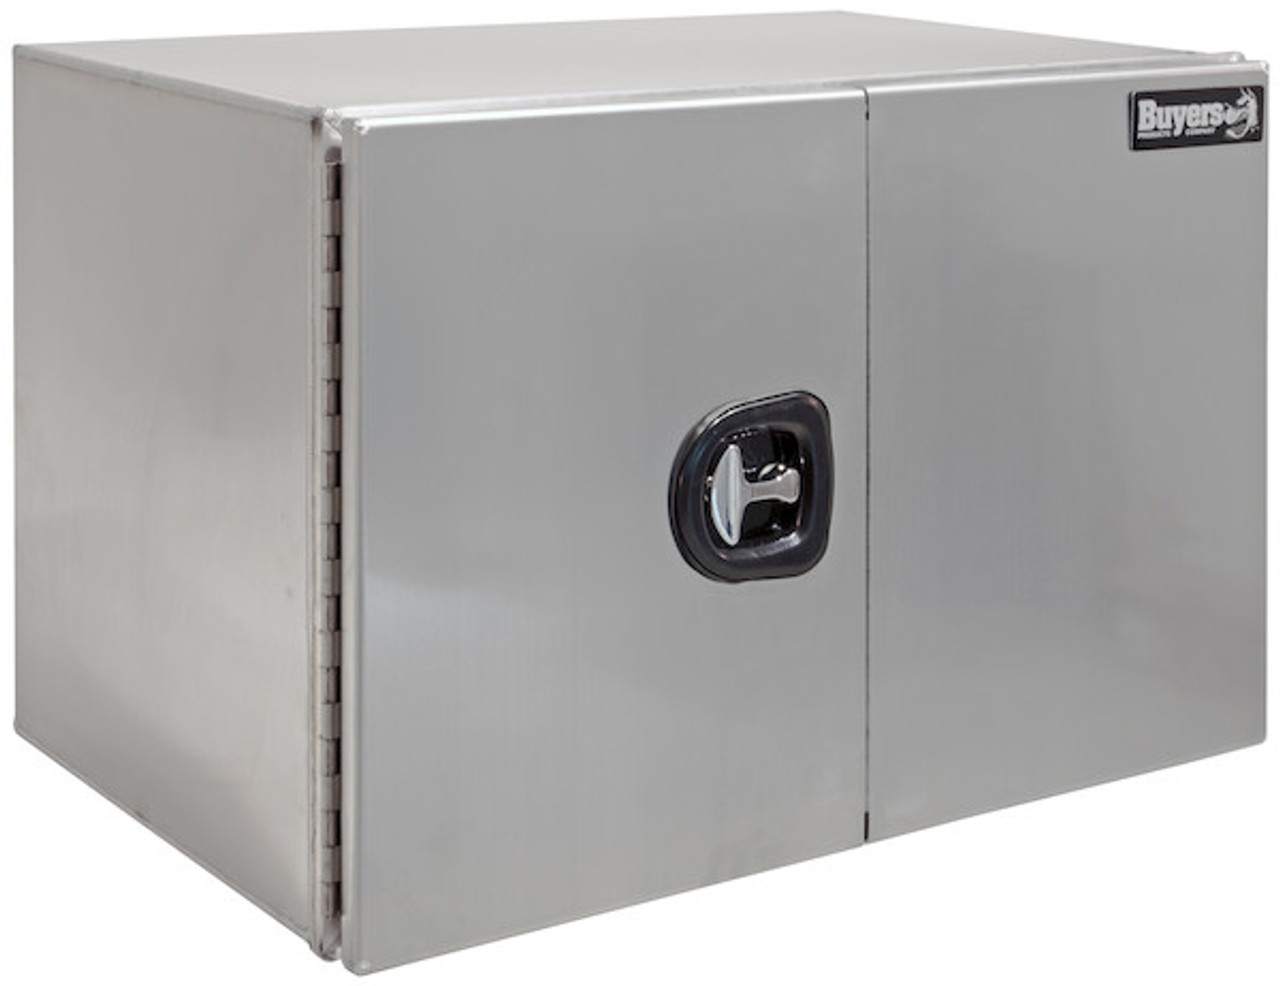 "1705445 BUYERS PRODUCTS XD SMOOTH ALUMINUM UNDERBODY TOOLBOX WITH BARN DOOR 24""HX24""DX60""W"